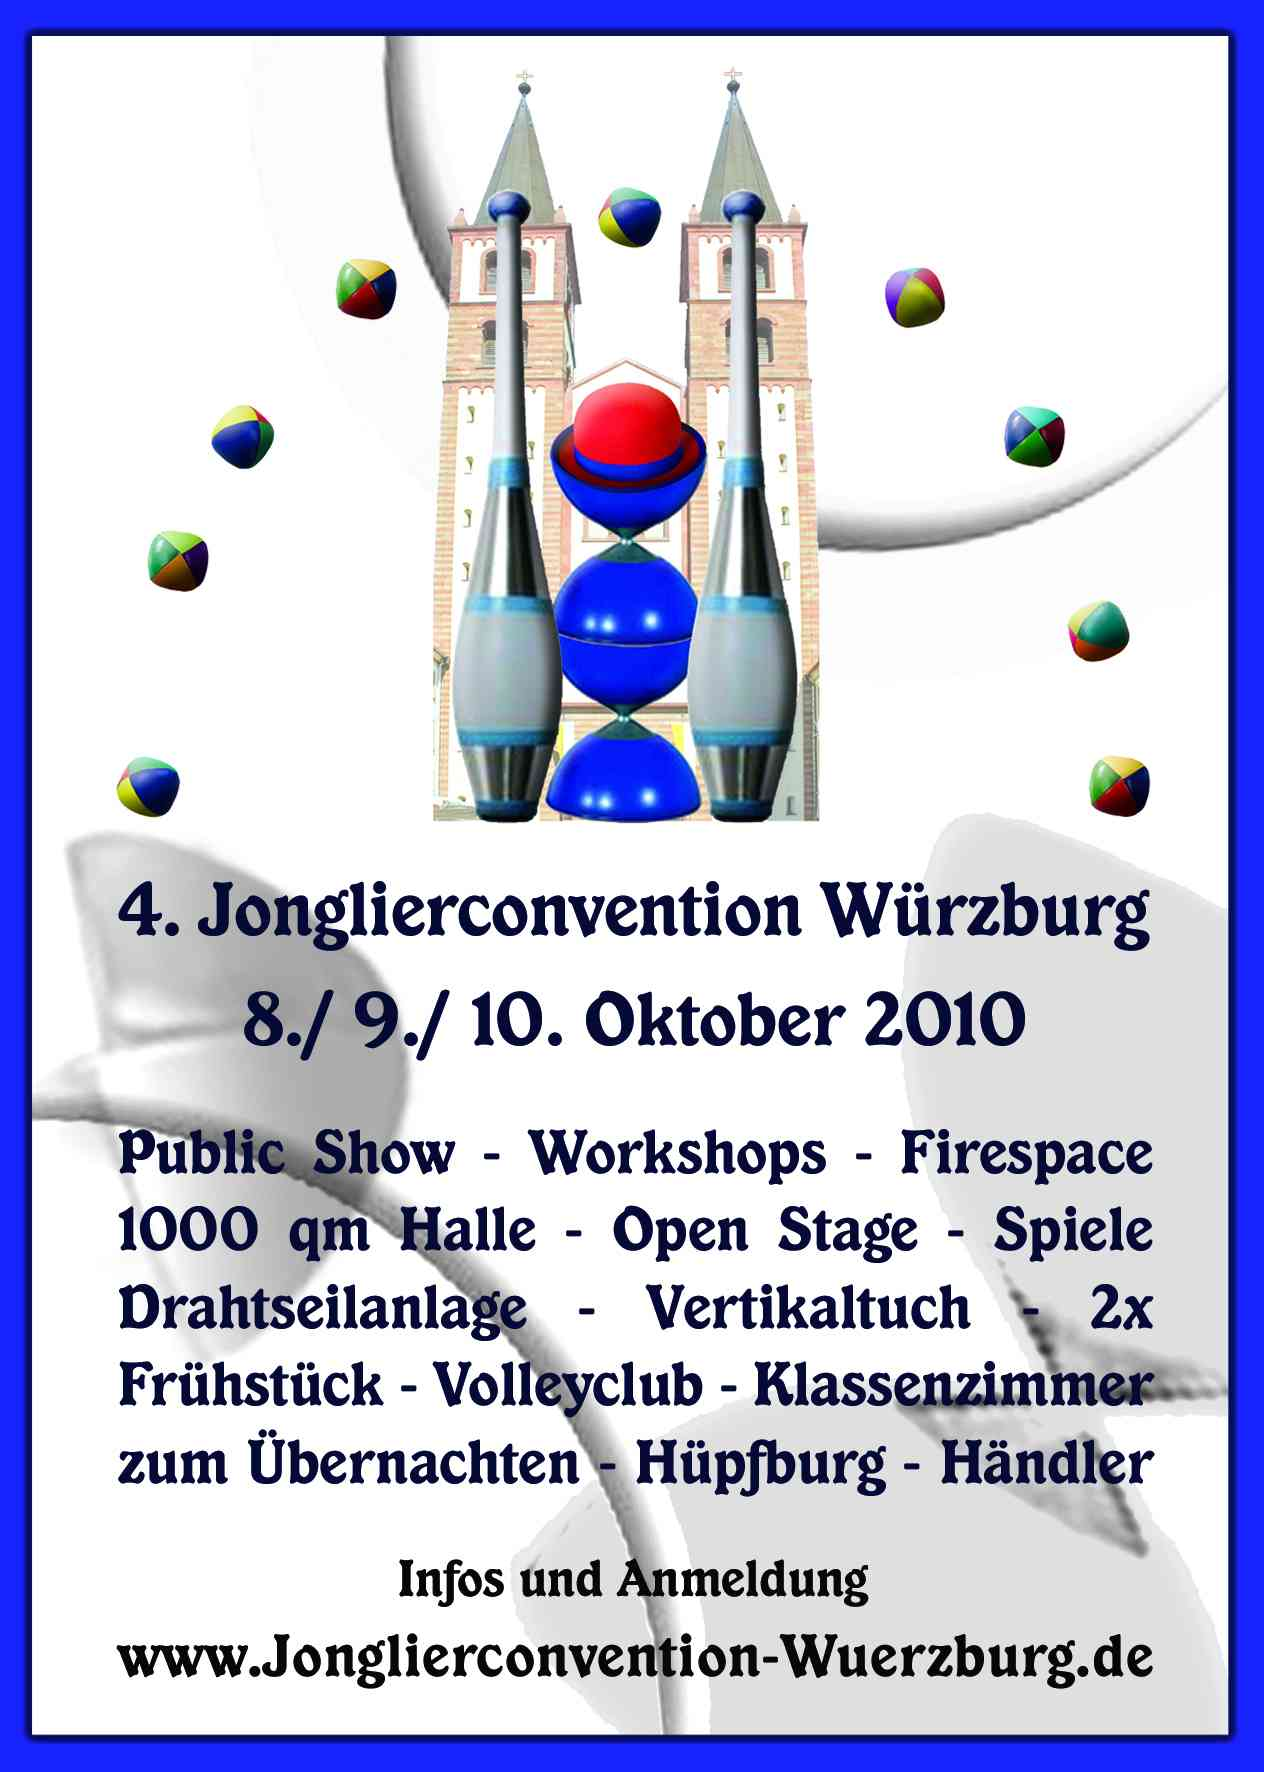 Jonglierconvention in w rzburg zirkusp dagogik for Ubernachten in wurzburg